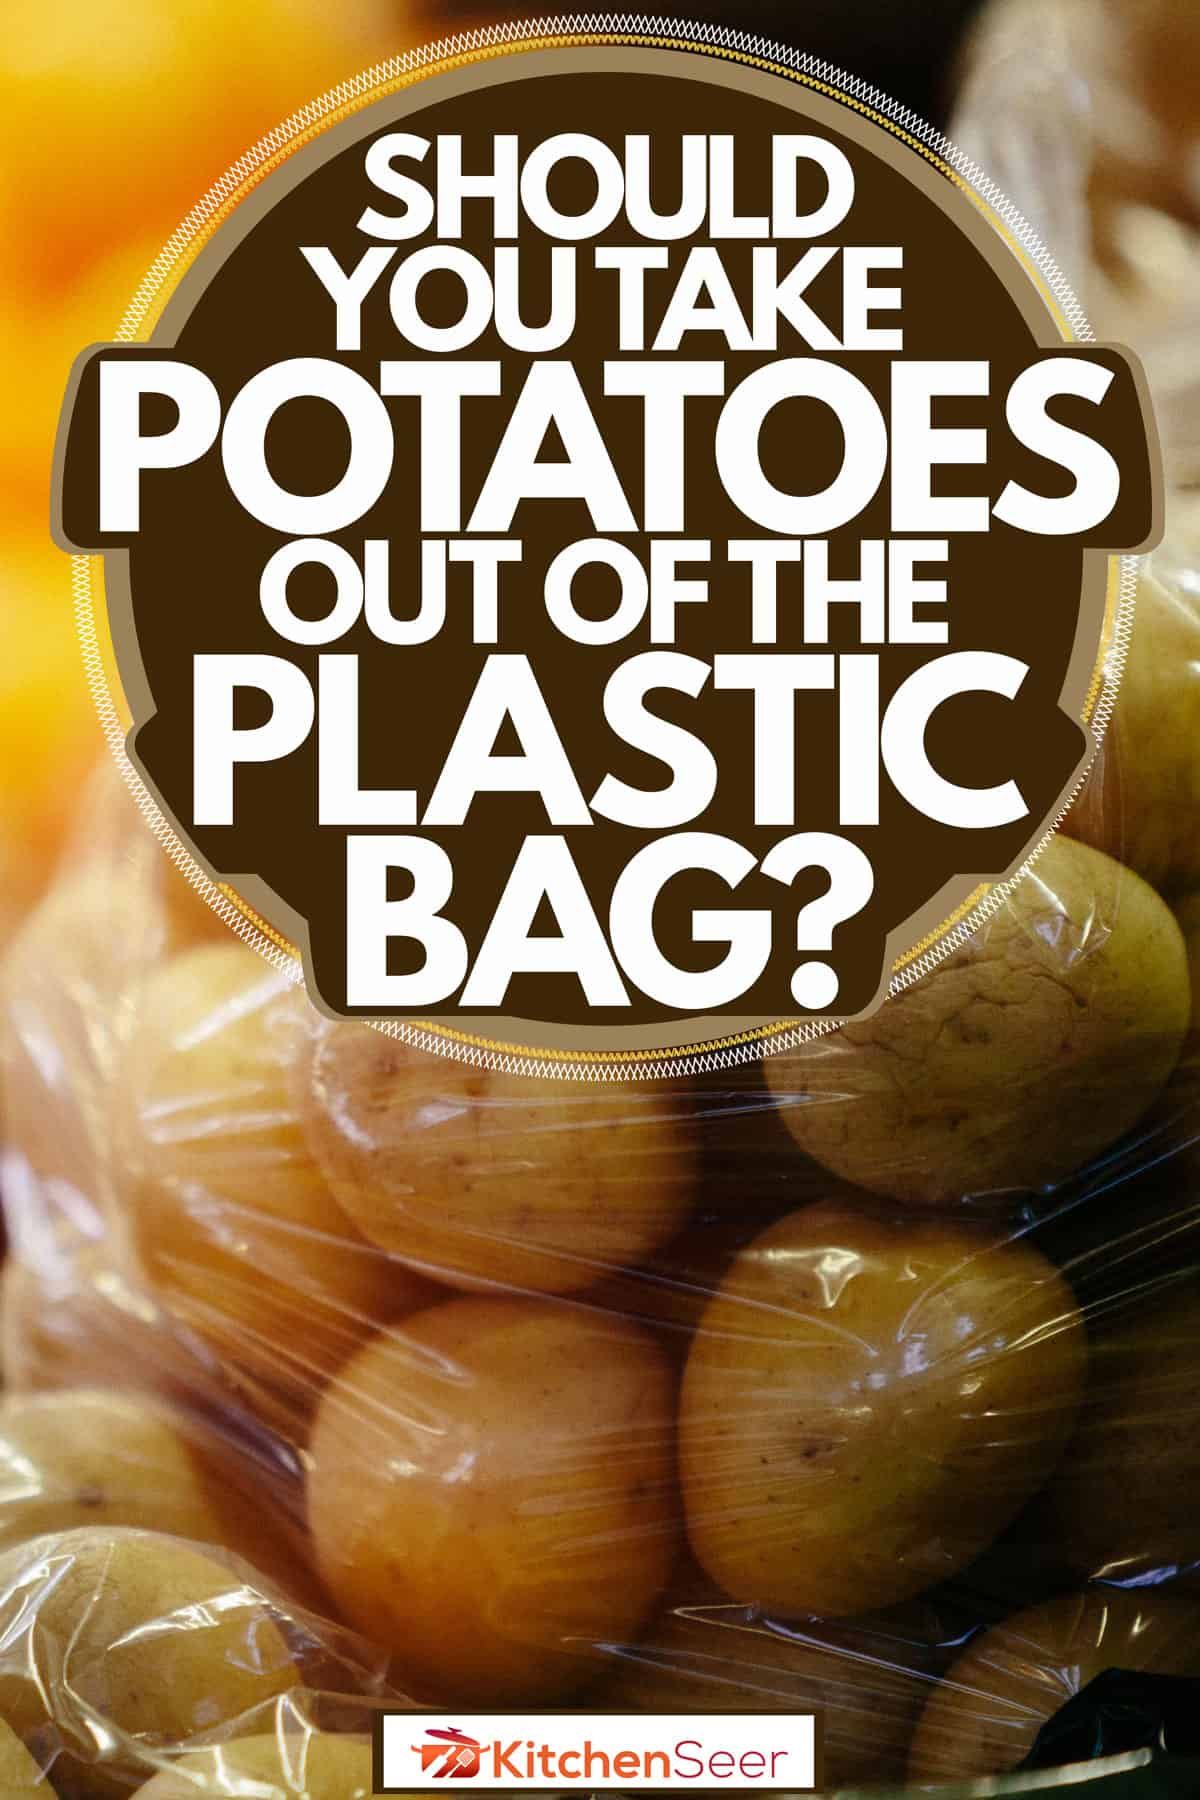 Lots of potatoes wrapped inside a plastic container, Should You Take Potatoes Out Of The Plastic Bag?